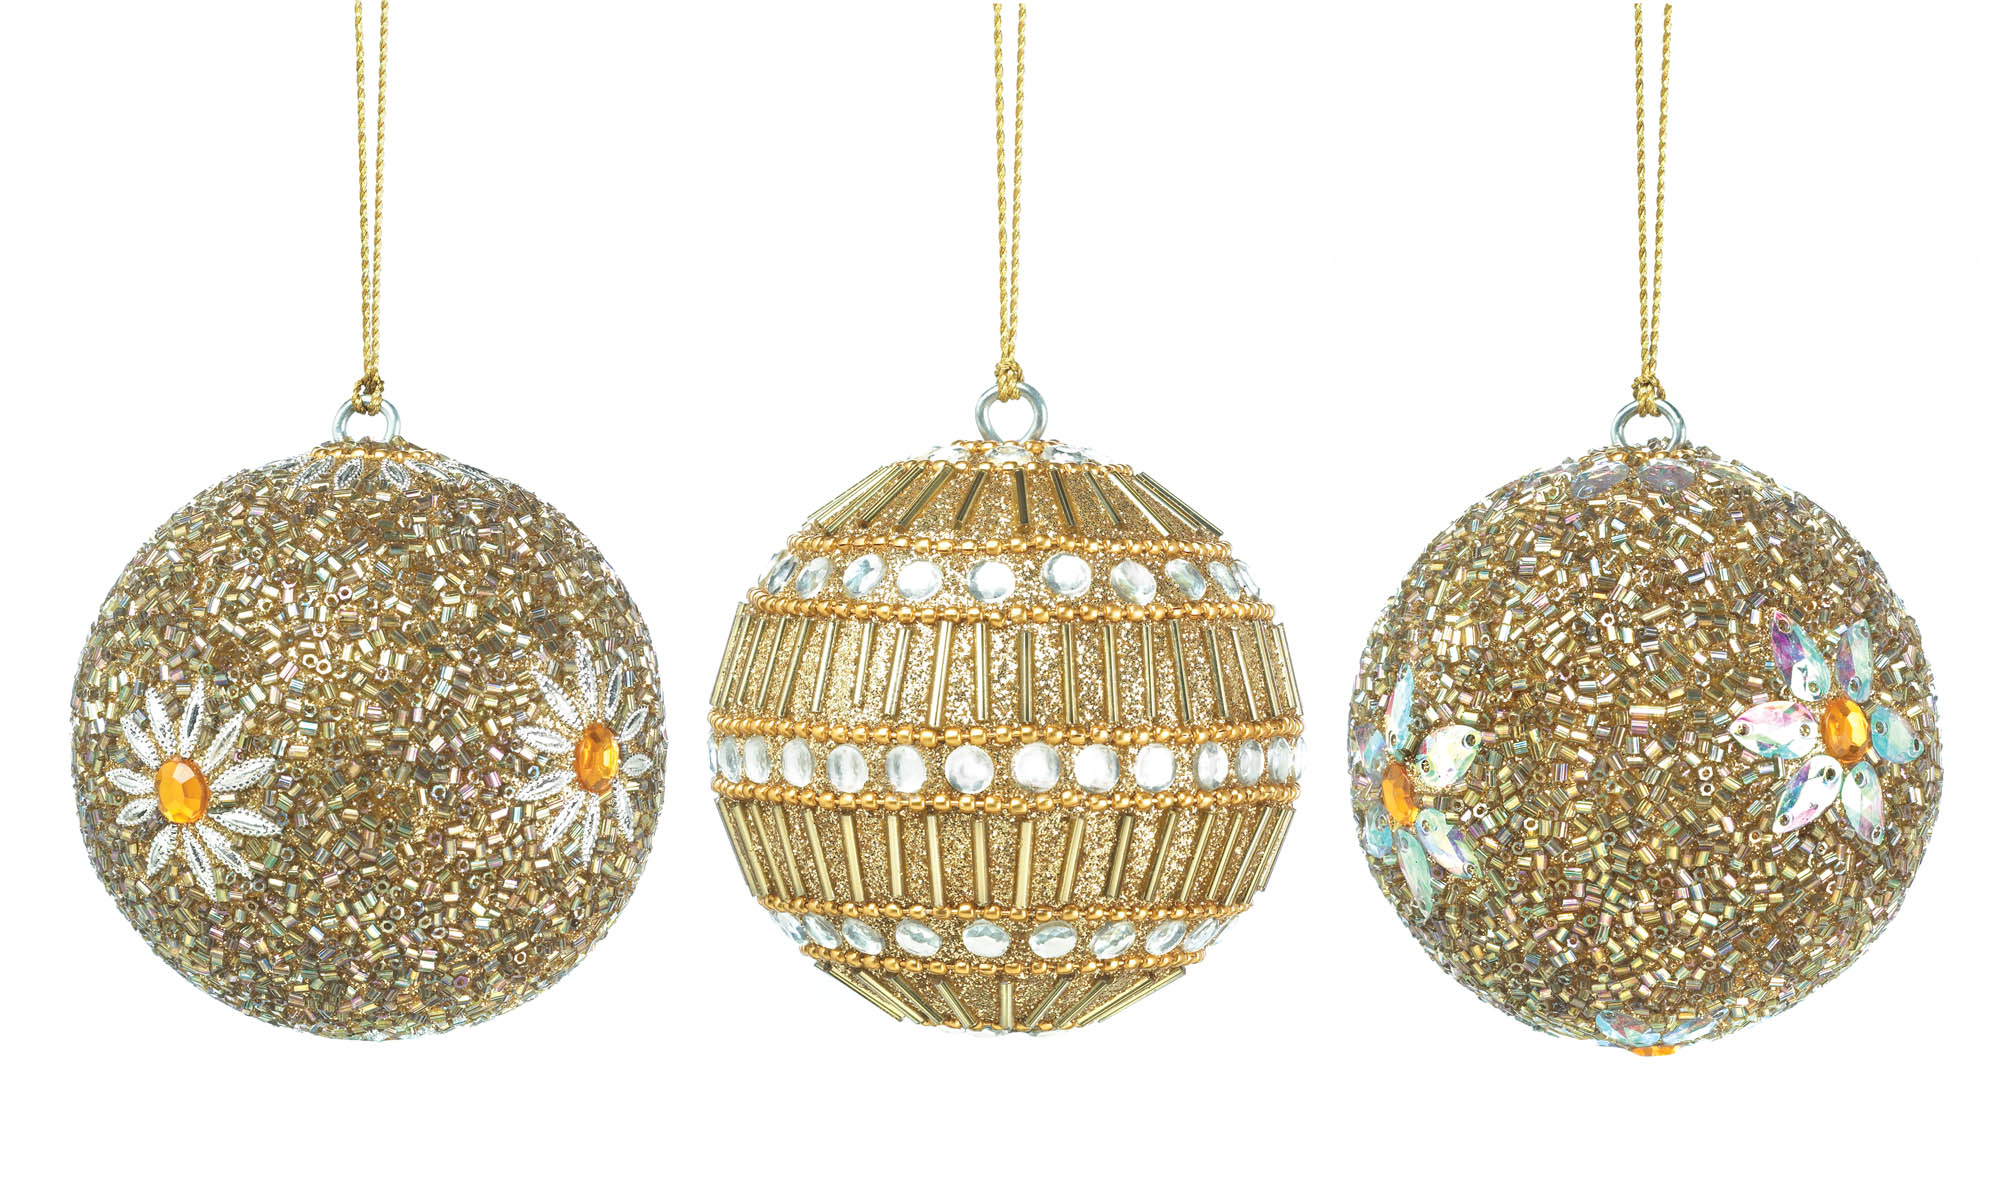 wholesale golden beaded ball ornament trio for sale at bulk cheap prices - Christmas Ball Ornaments Bulk